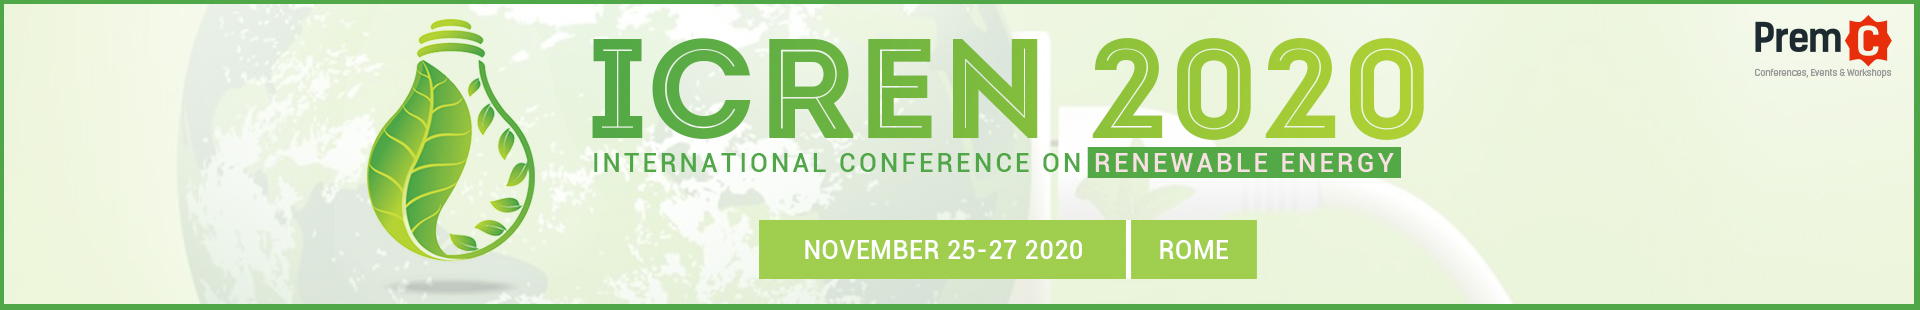 International Conference on Renewable Energy banner